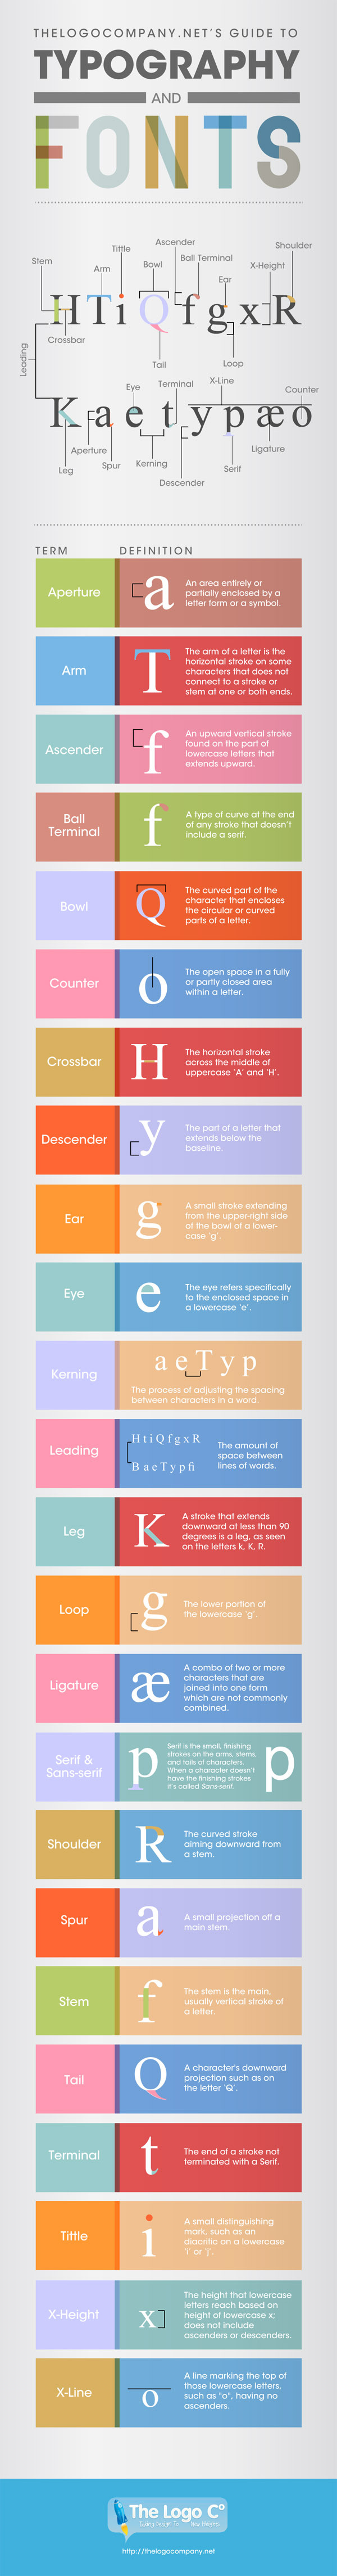 The Ultimate Guide to Typography and Font [Infographic]